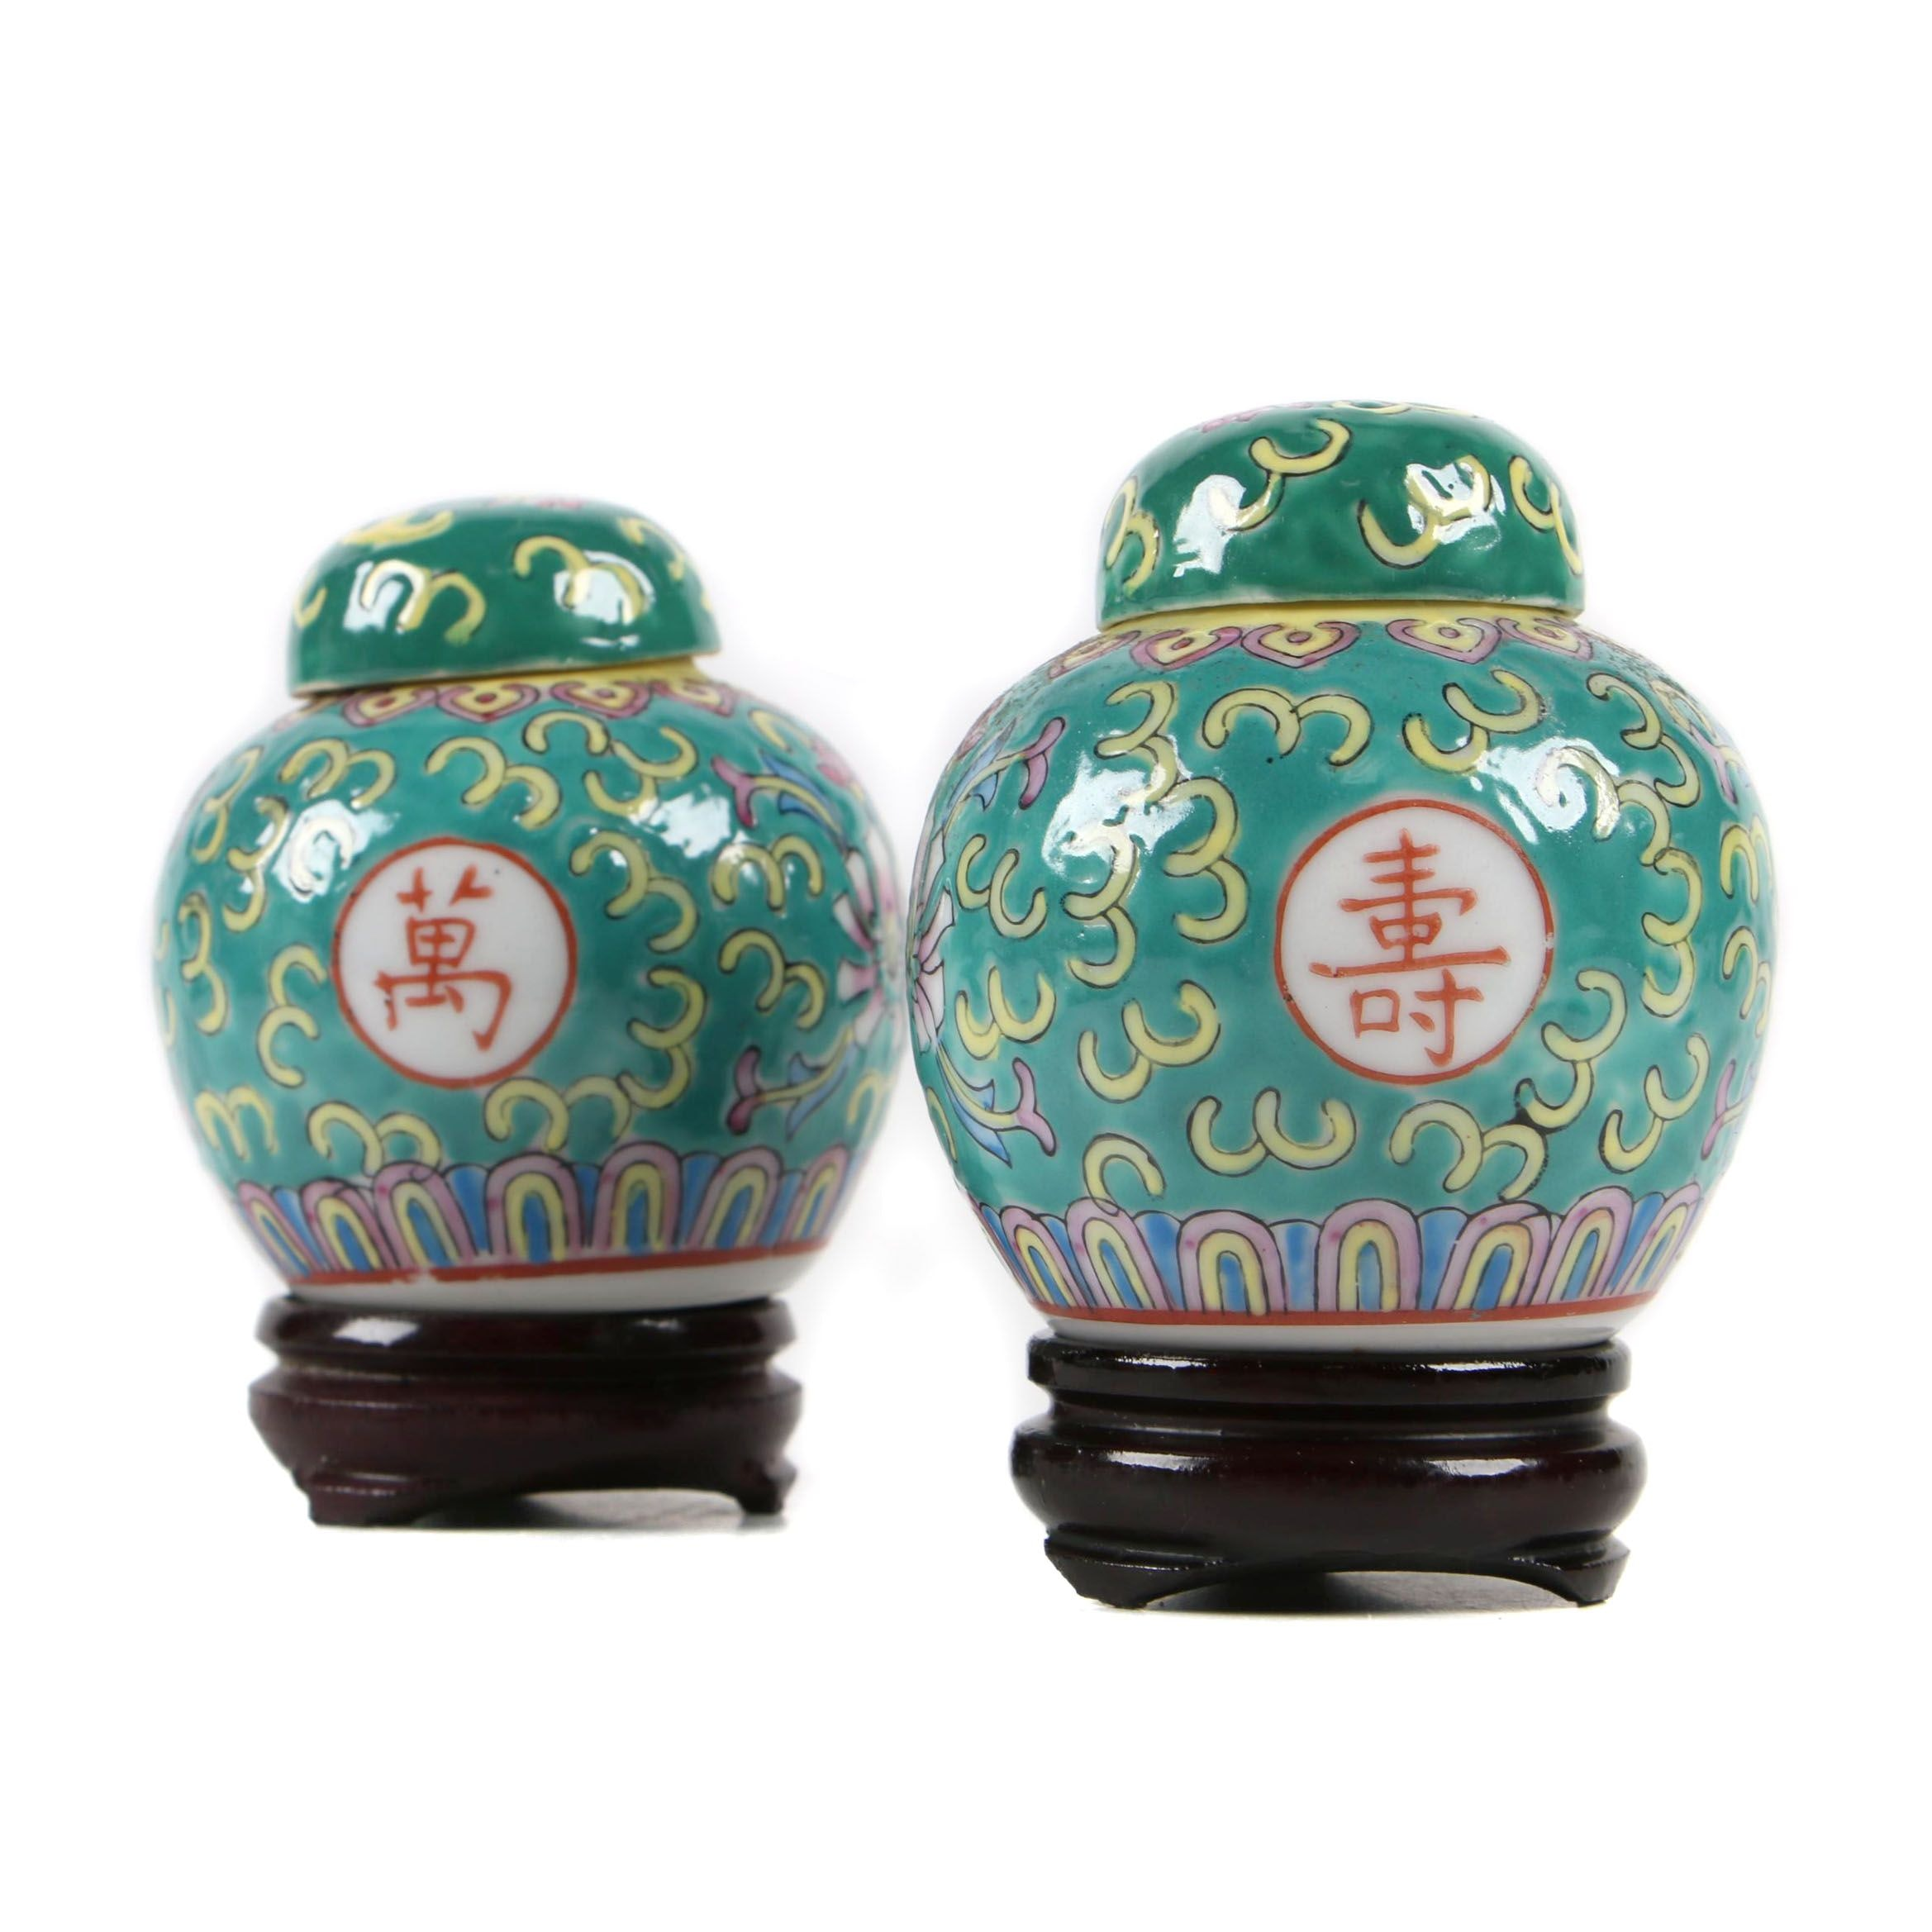 Chinese Miniature Porcelain Ginger Jars with Stands, Late 20th Century